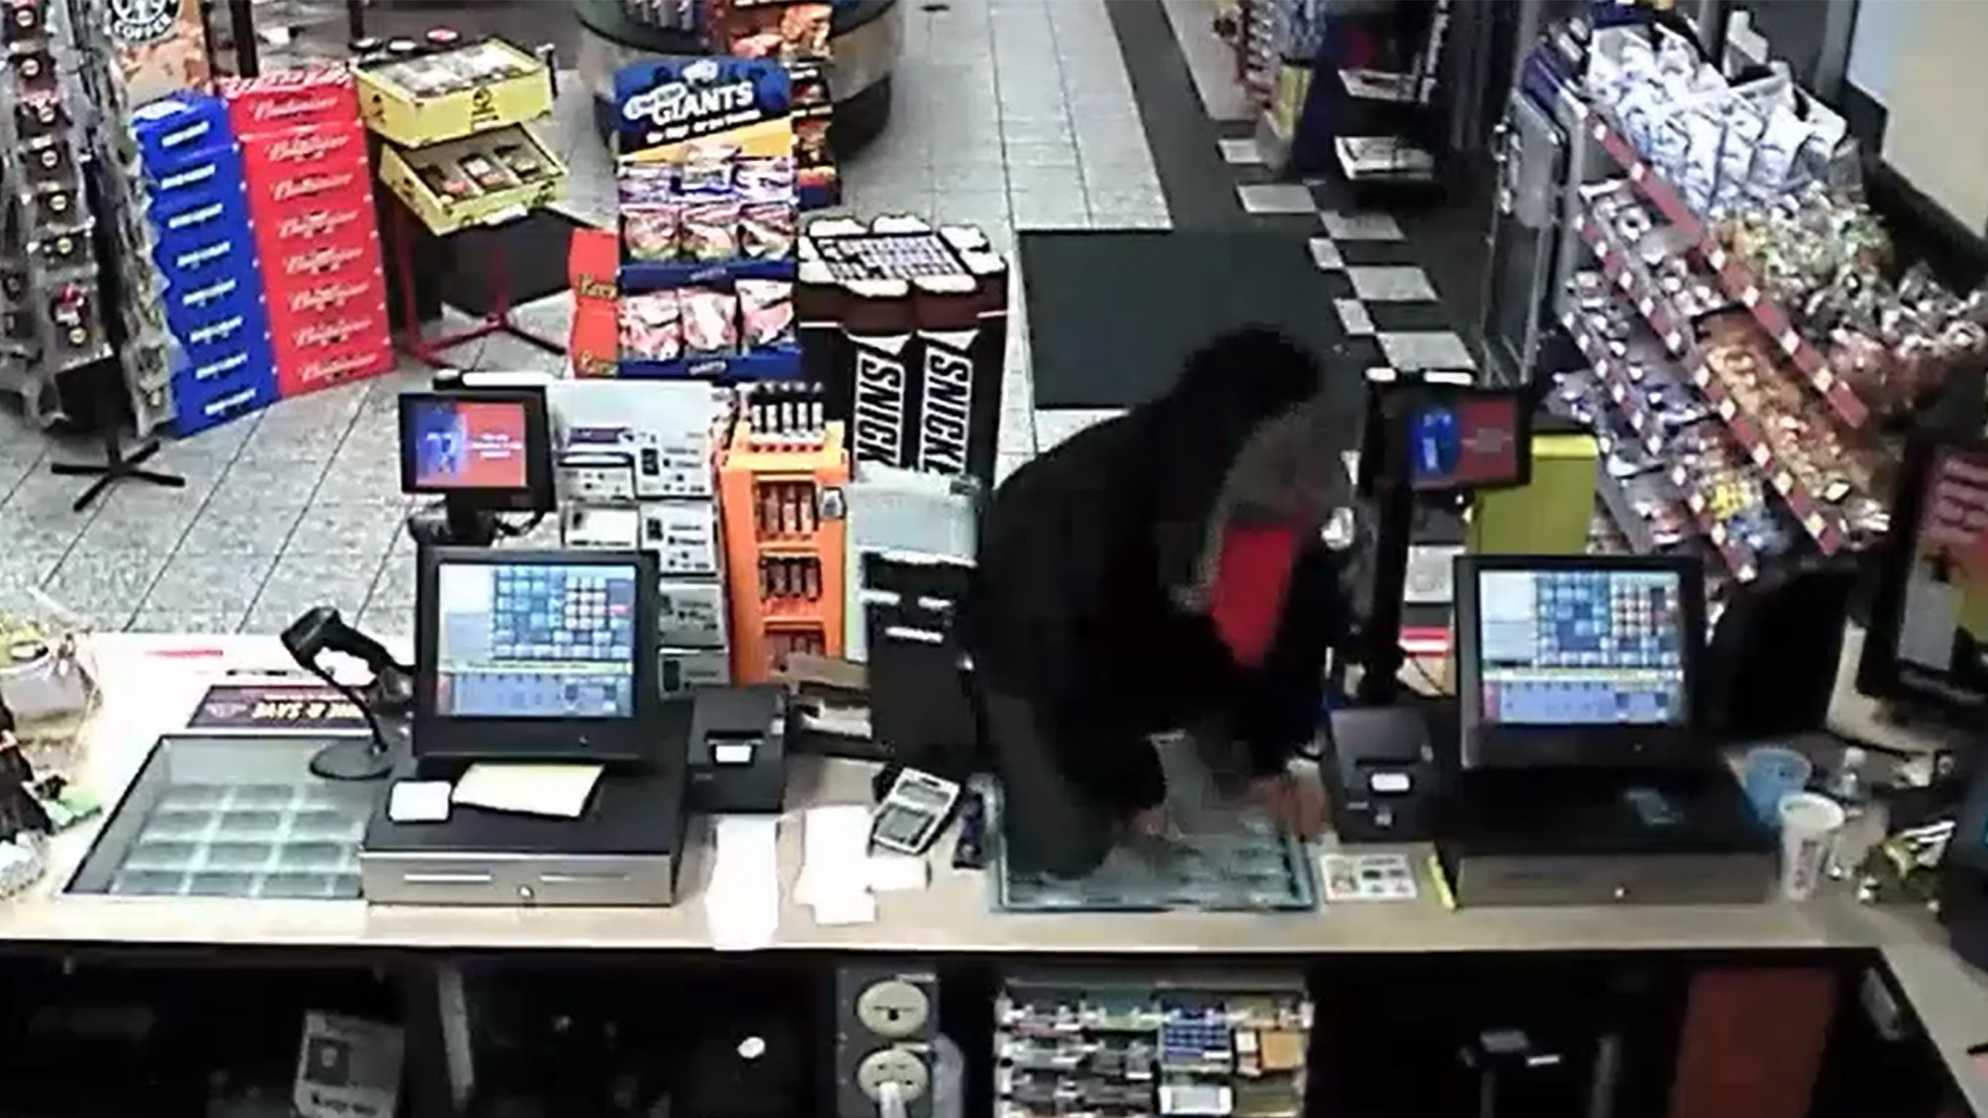 A brazen robber wielded a knife at a Riverbank gas station, jumping over the counter and demanded money from the clerk on Sunday. (May 03, 2016)